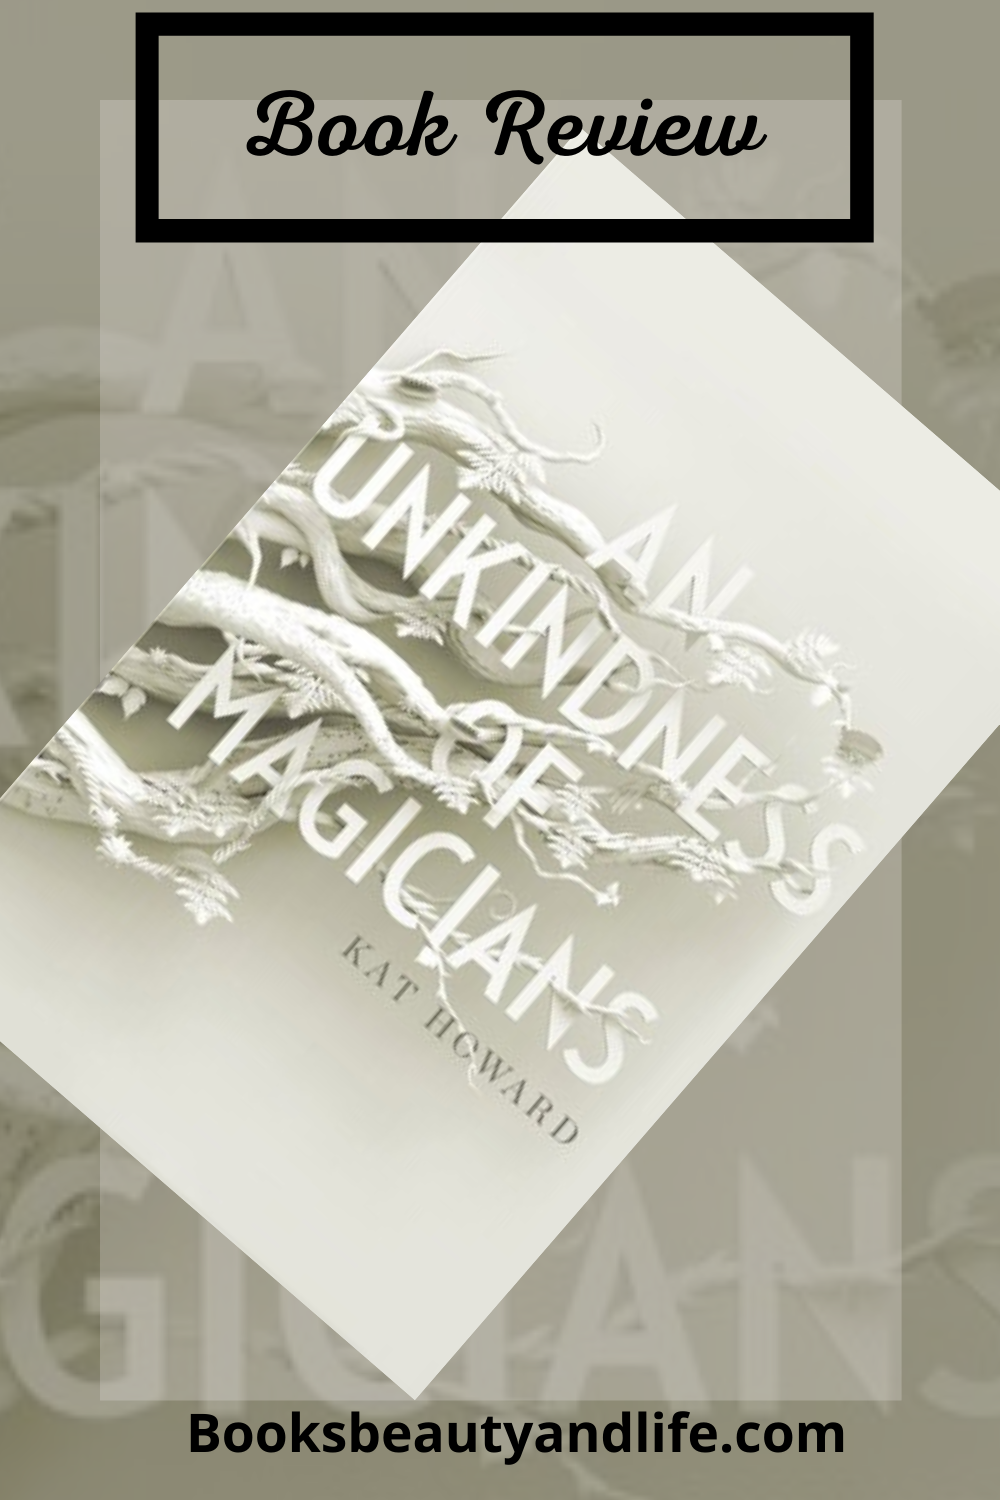 An Unkindness of Magicians by Kat Howard